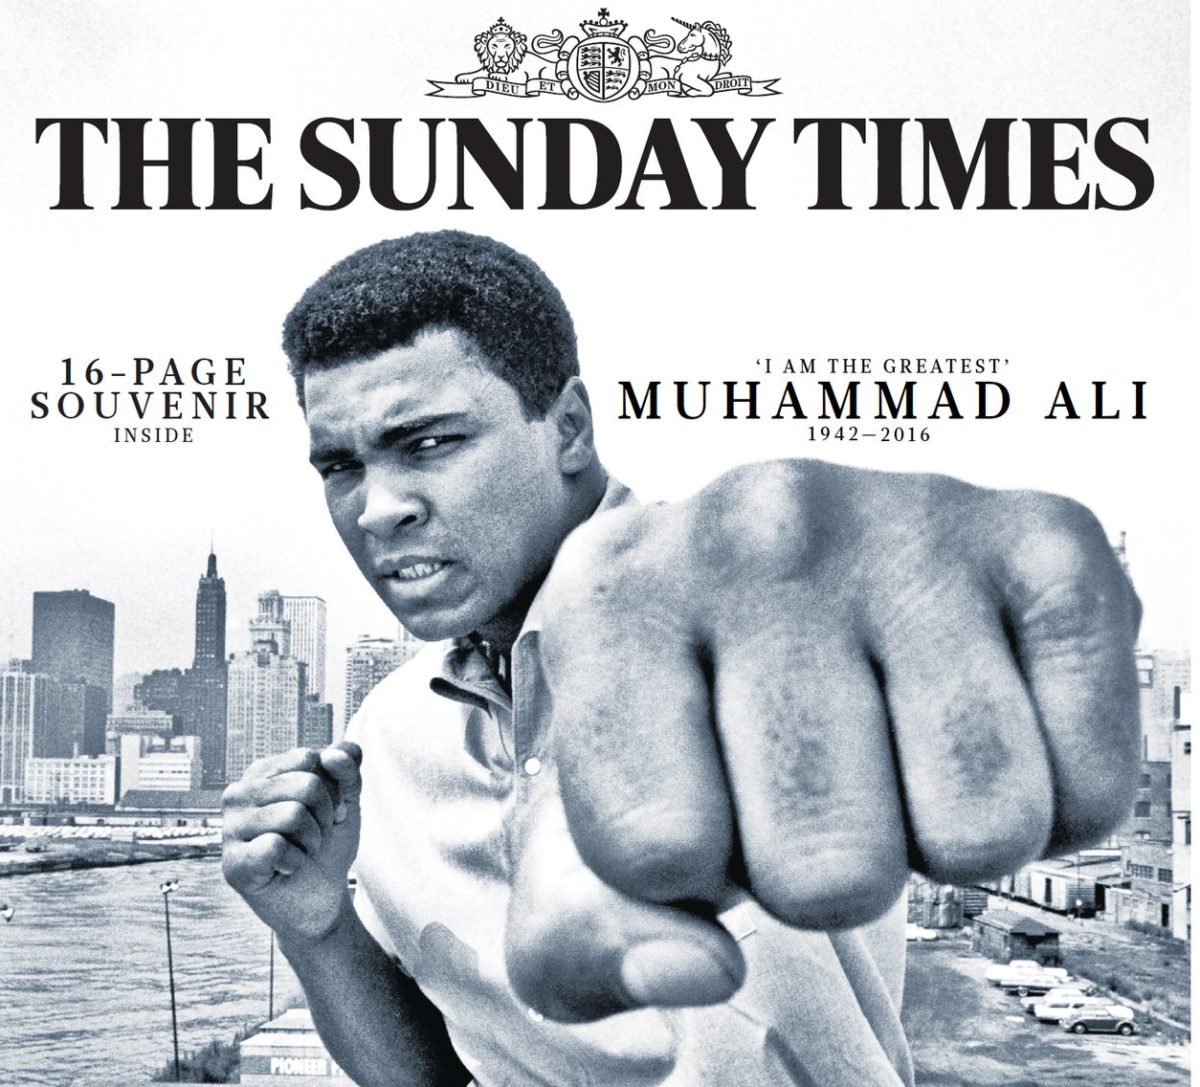 Muhammad Ali: How Fleet Street paid tribute to the champ